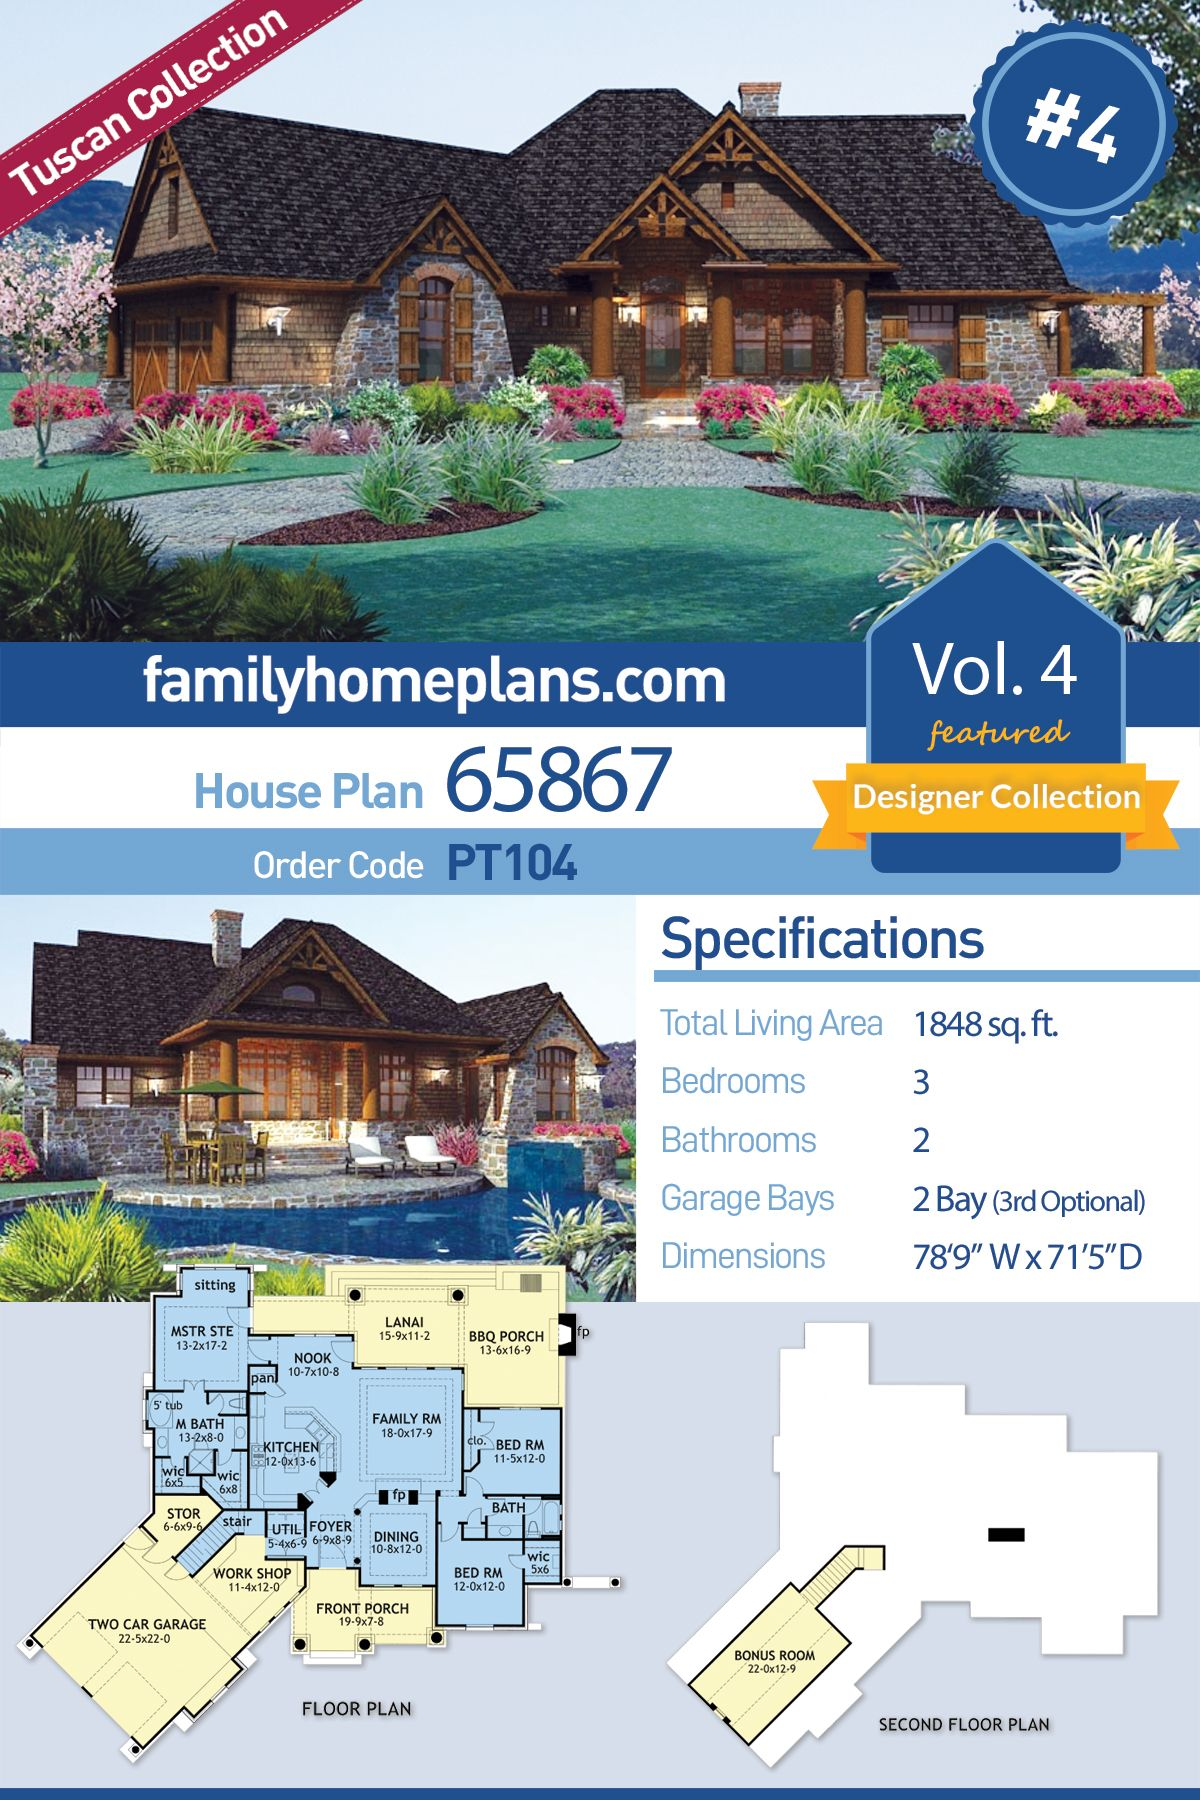 Tuscan Style House Plan 65867 With 3 Bed 2 Bath 2 Car Garage Tuscan House Plans Craftsman House Plans House Plans